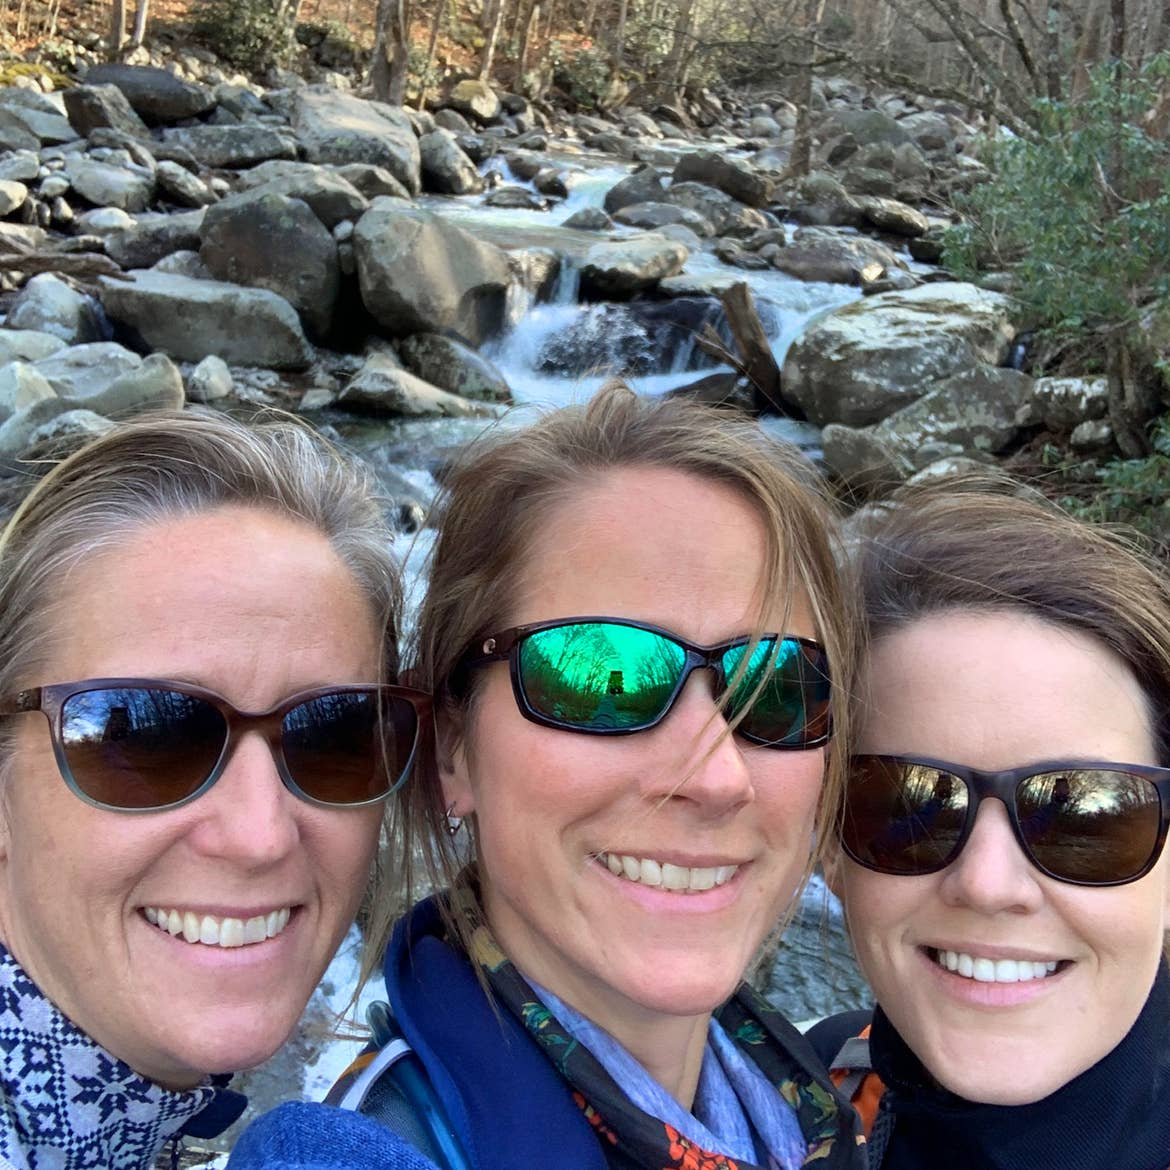 Featured Contributor, Jennifer C. Harmon (right) and her two girlfriends wear sunglasses in front of a waterfall.